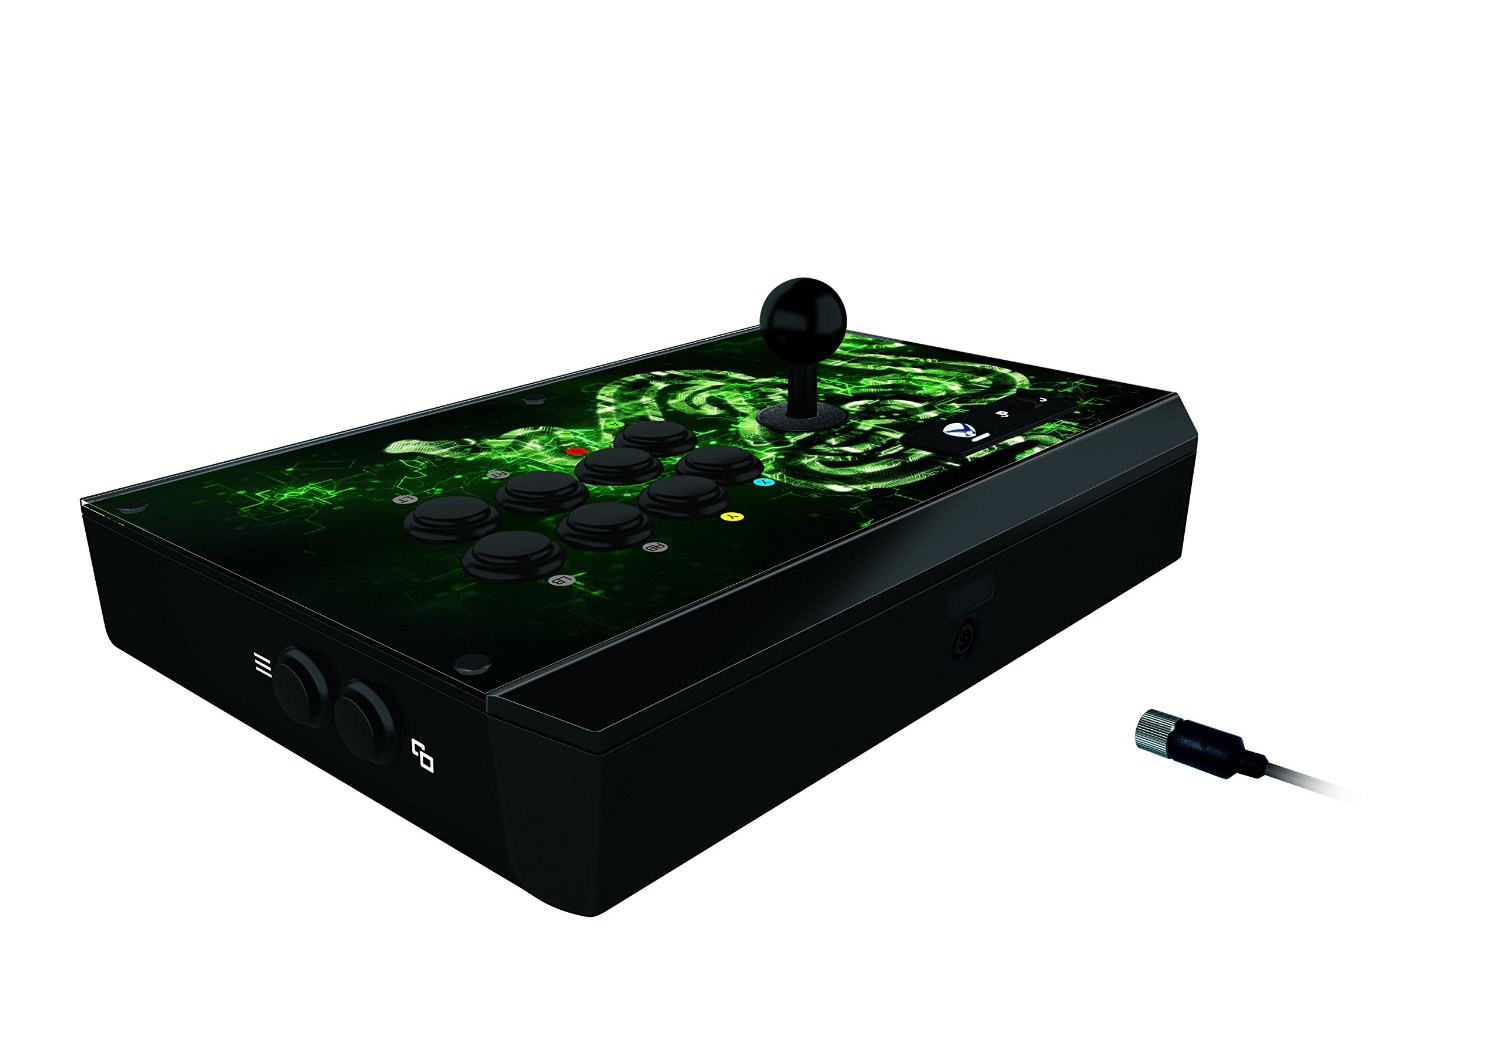 Details And Images Revealed For Razer Atrox Xbox One